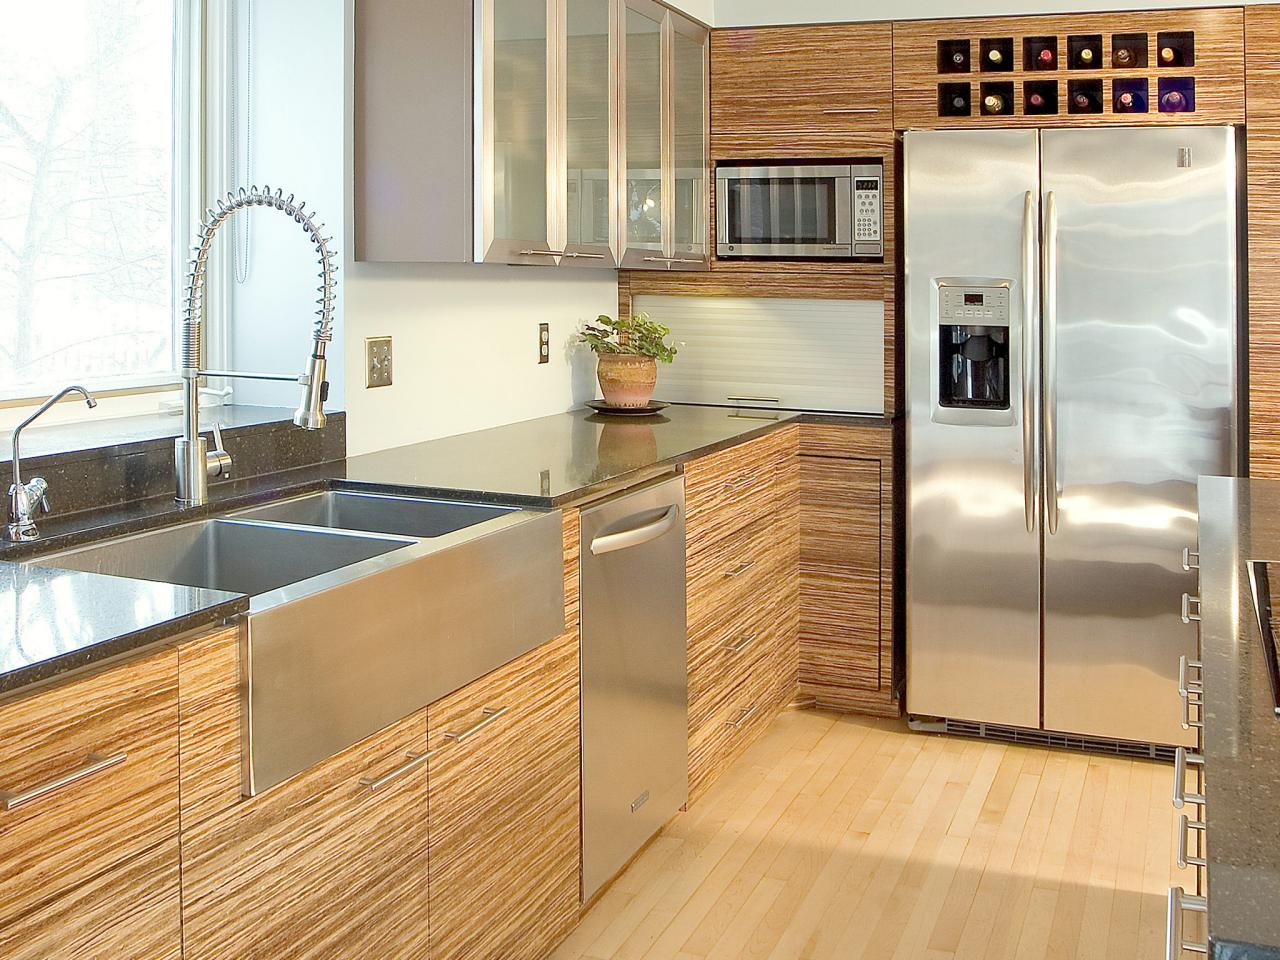 Contemporary Kitchen With Bamboo Cabinets And Stainless Steel Countertops